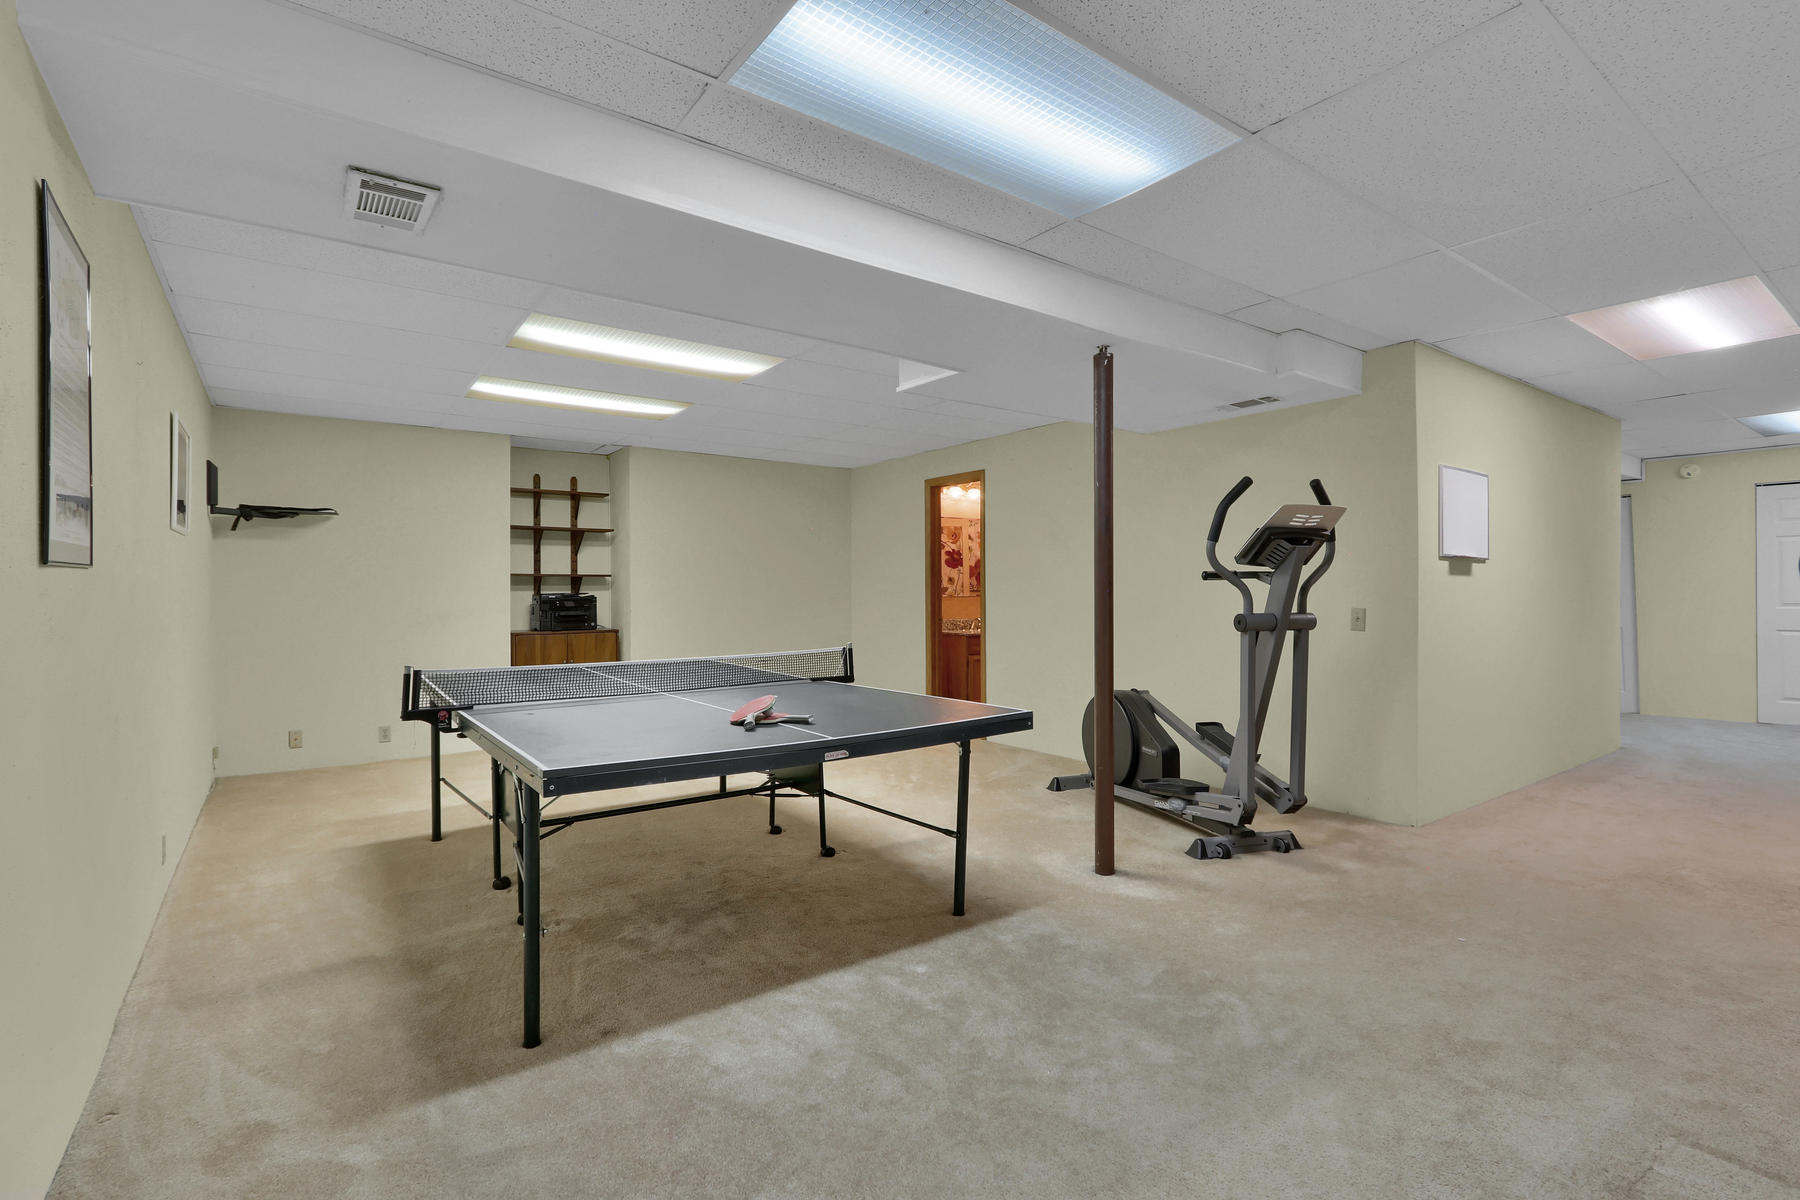 8490 Independence Way Arvada-014-026-Basement-MLS_Size.jpg